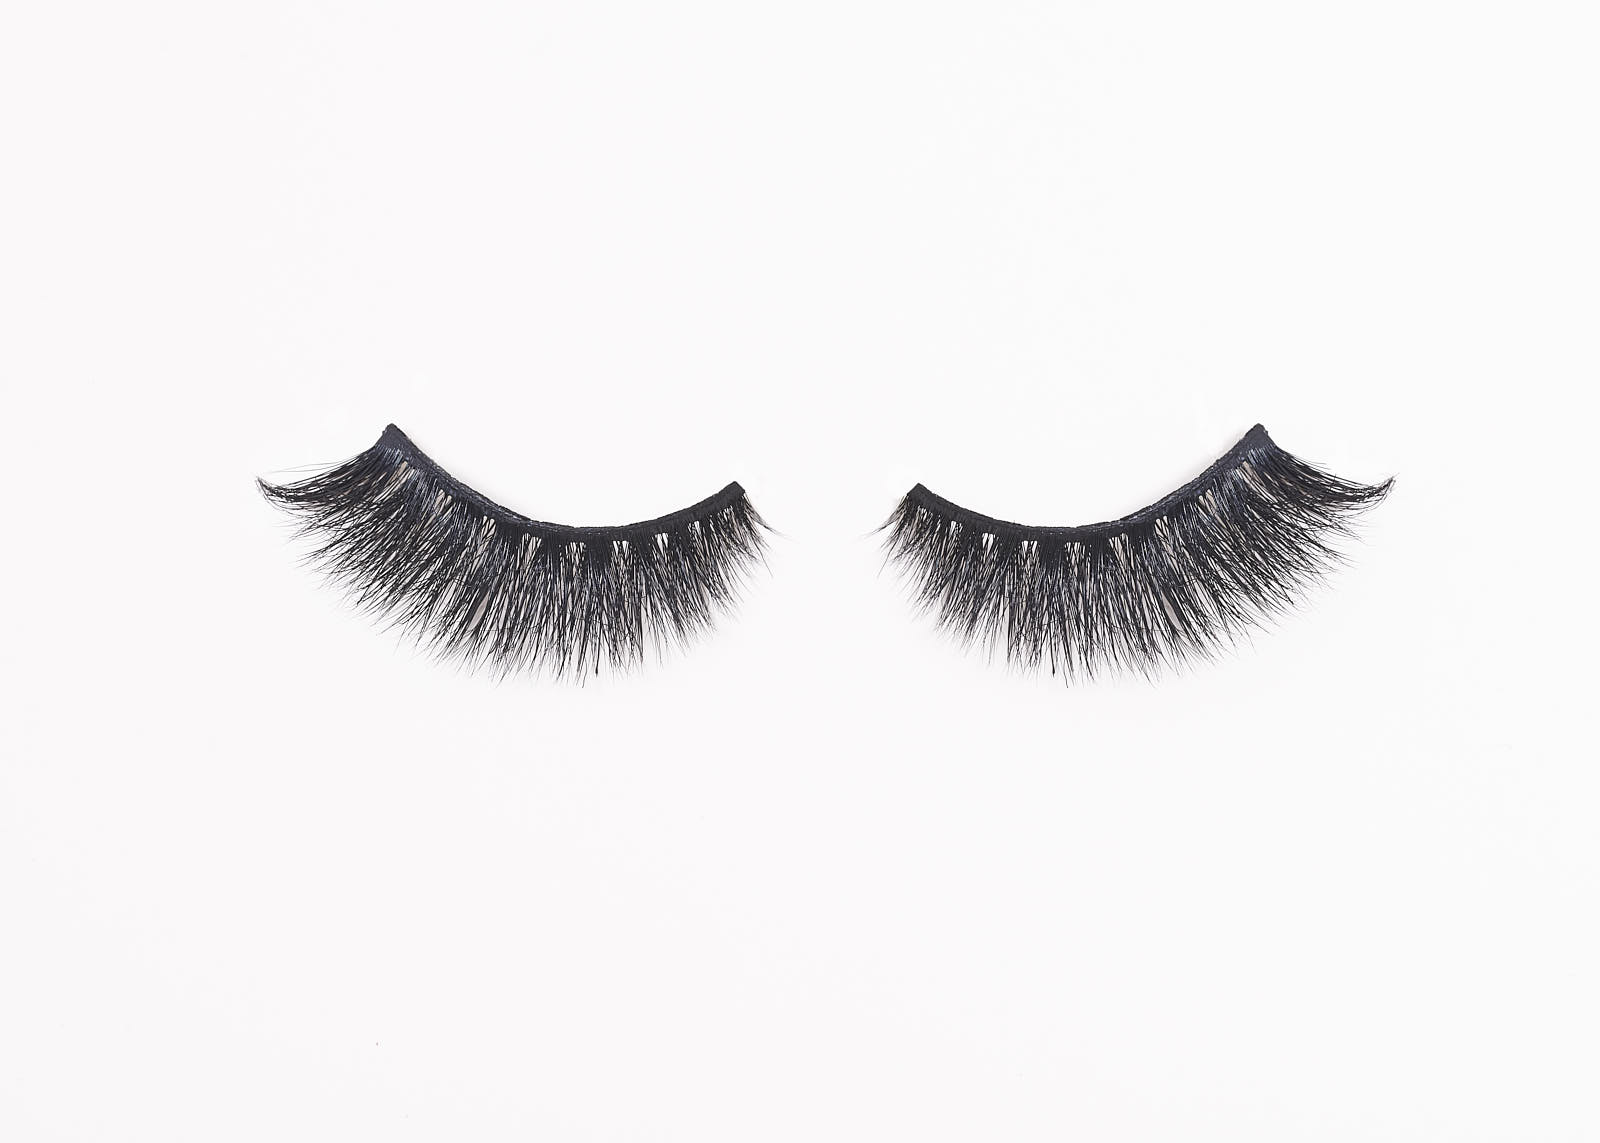 lashes number 028.jpg